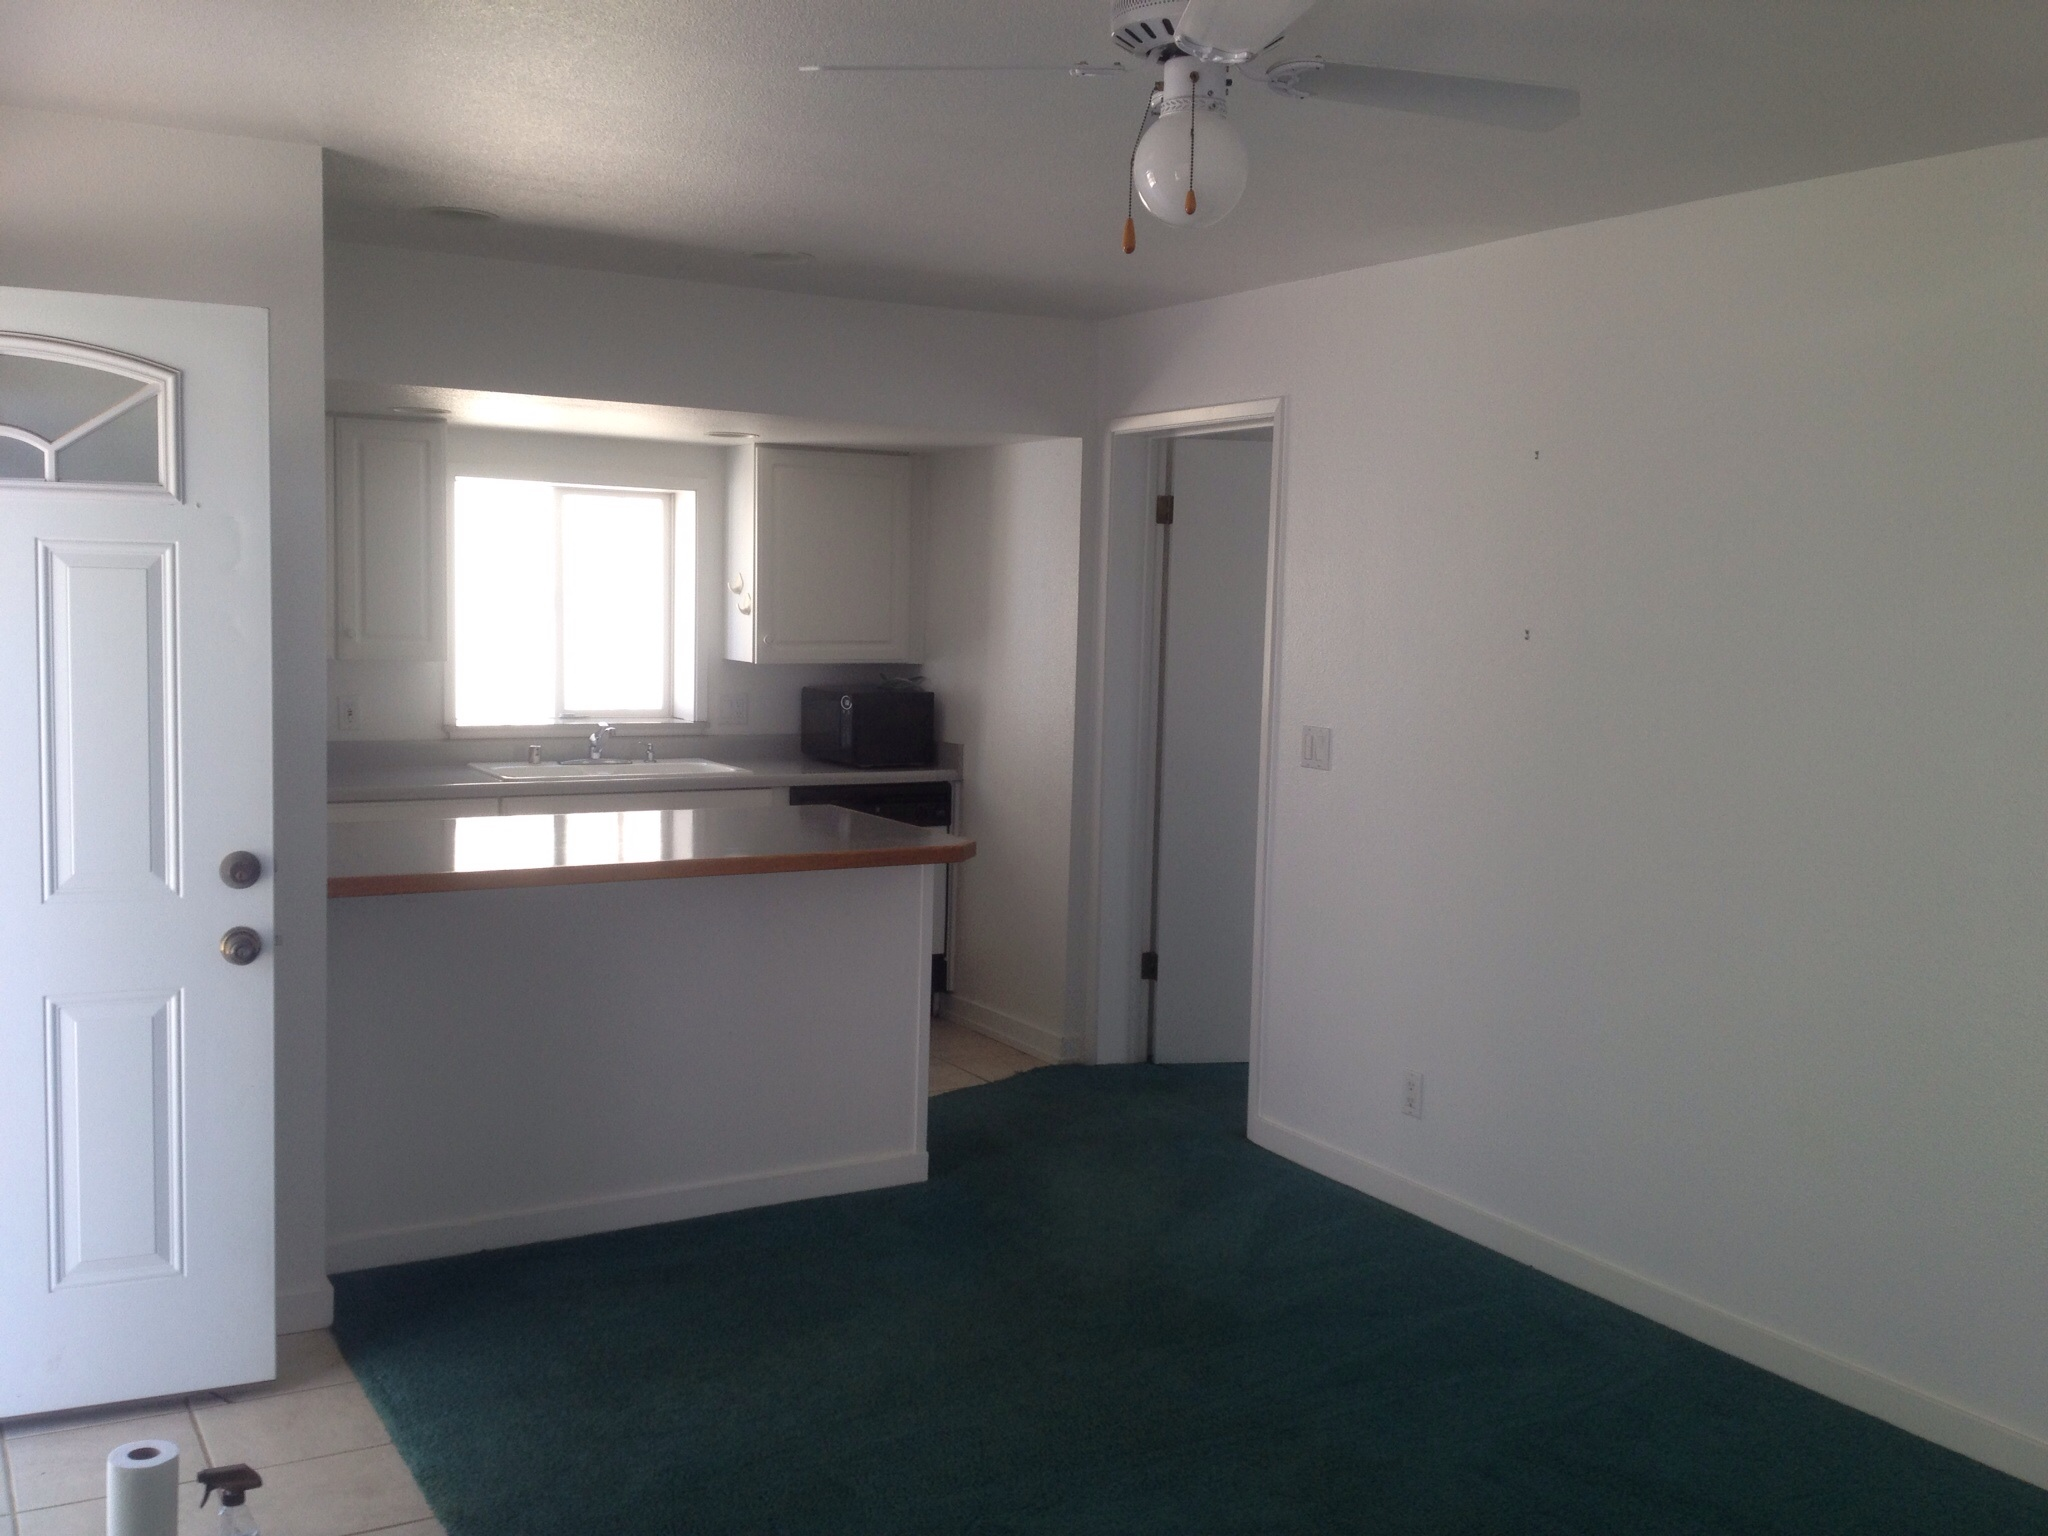 1 Bedroom 1 Bath Granny Unit San Luis Obispo Apartment